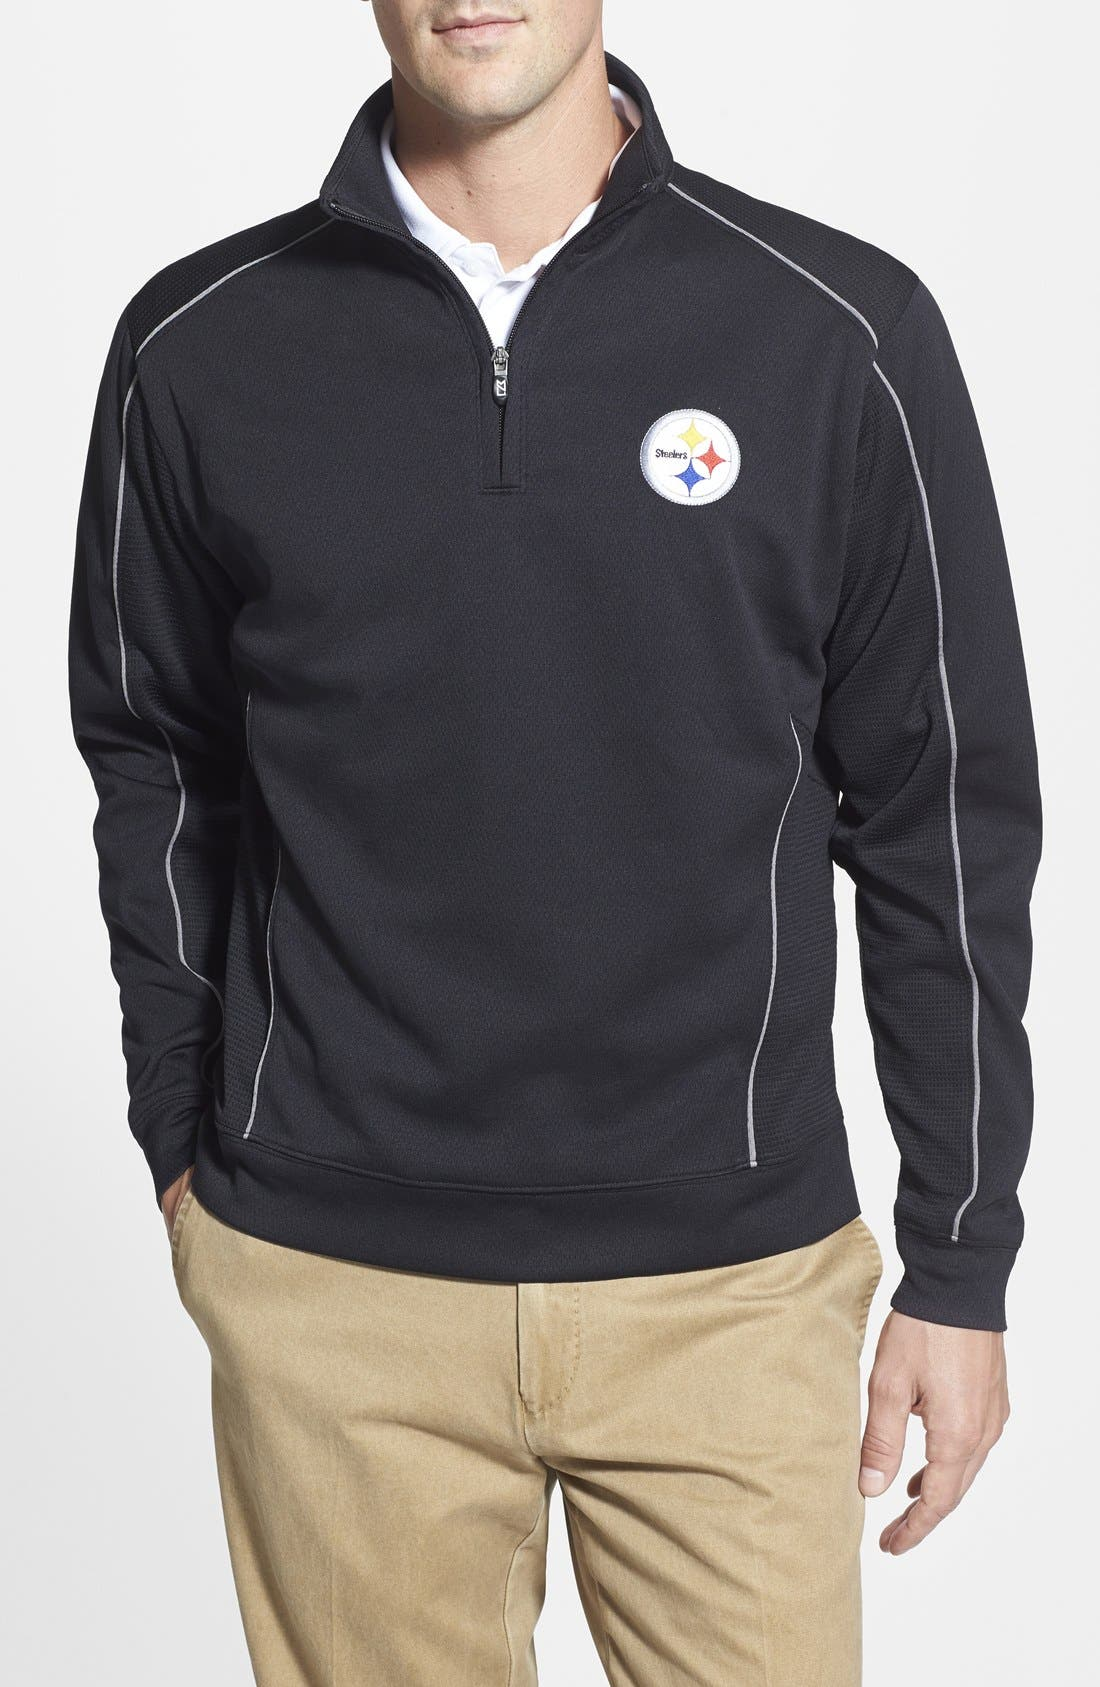 Pittsburgh Steelers - Edge DryTec Moisture Wicking Half Zip Pullover,                         Main,                         color, Black